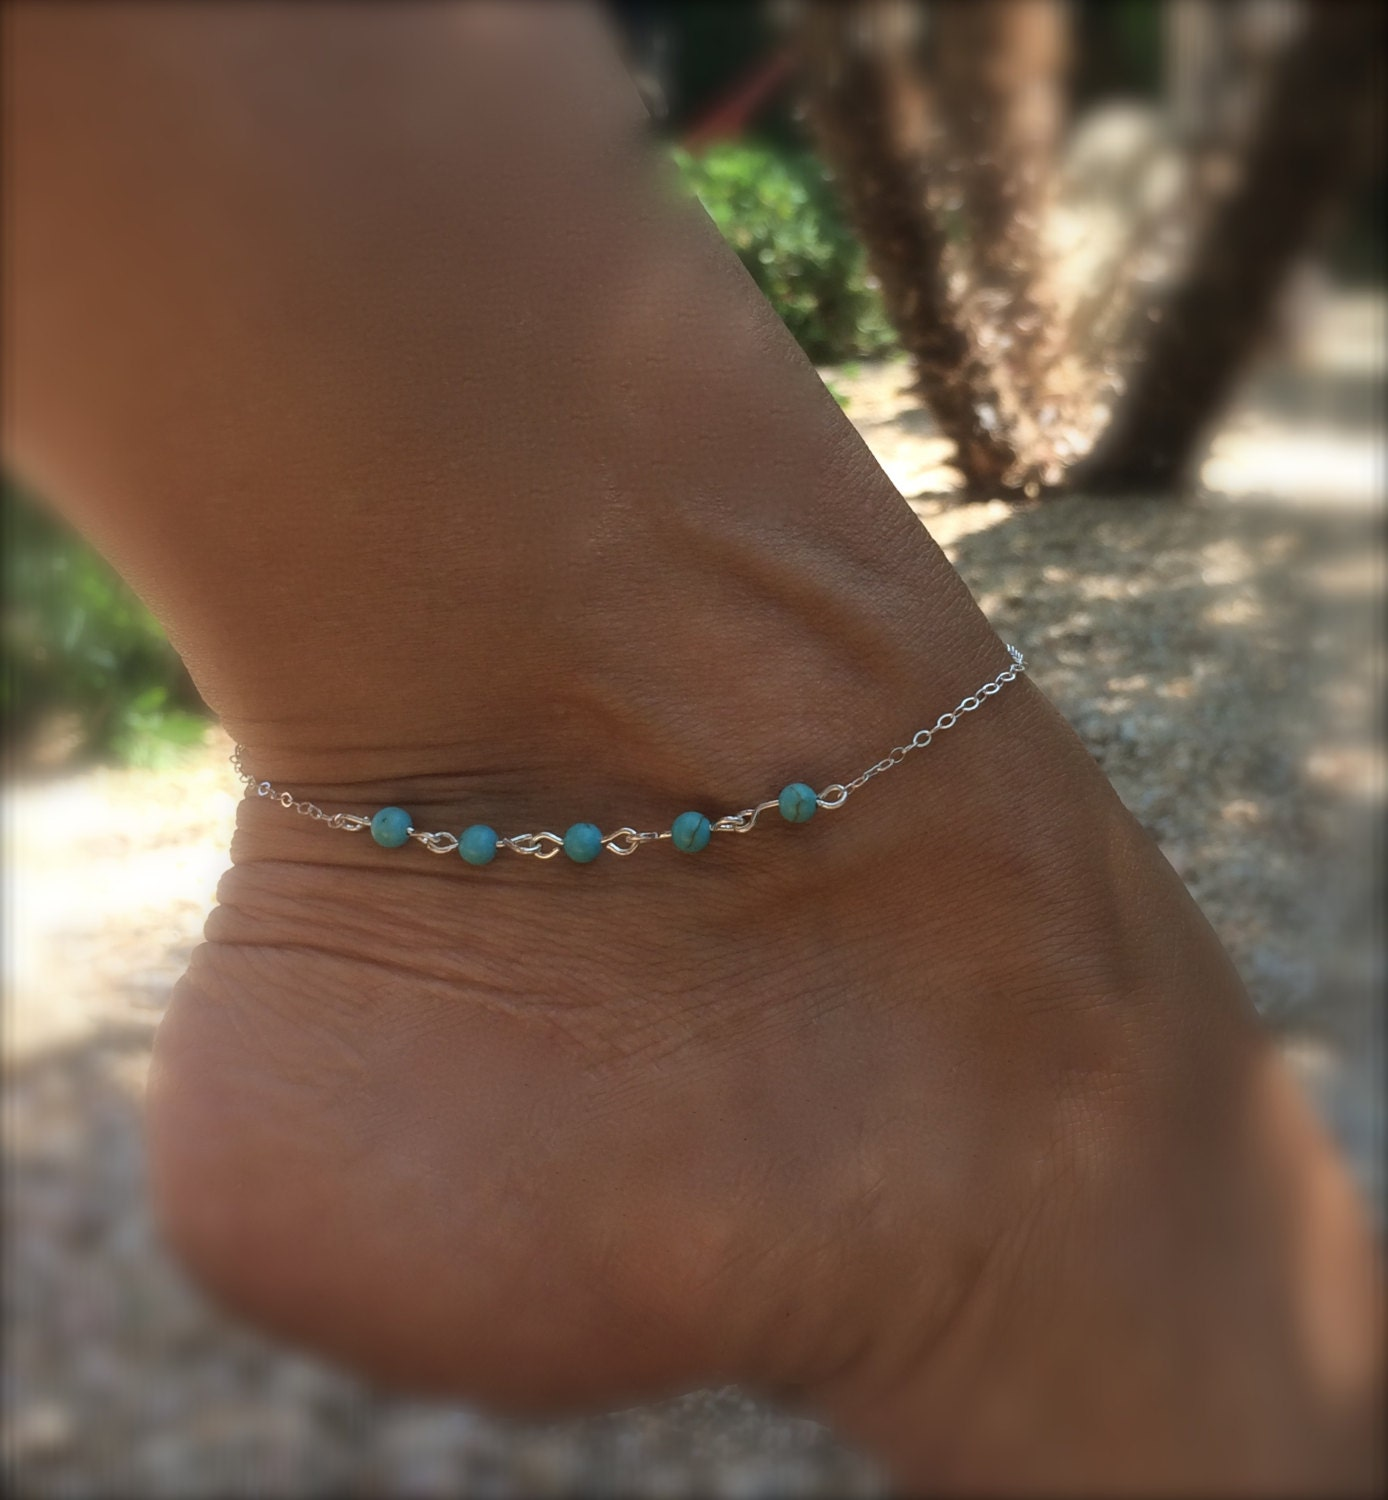 gift il surfer matching yellow beads girls hemp sunny ankle p friendship teen bracelets beach womans glass hippie fullxfull white anklet summer anklets boho